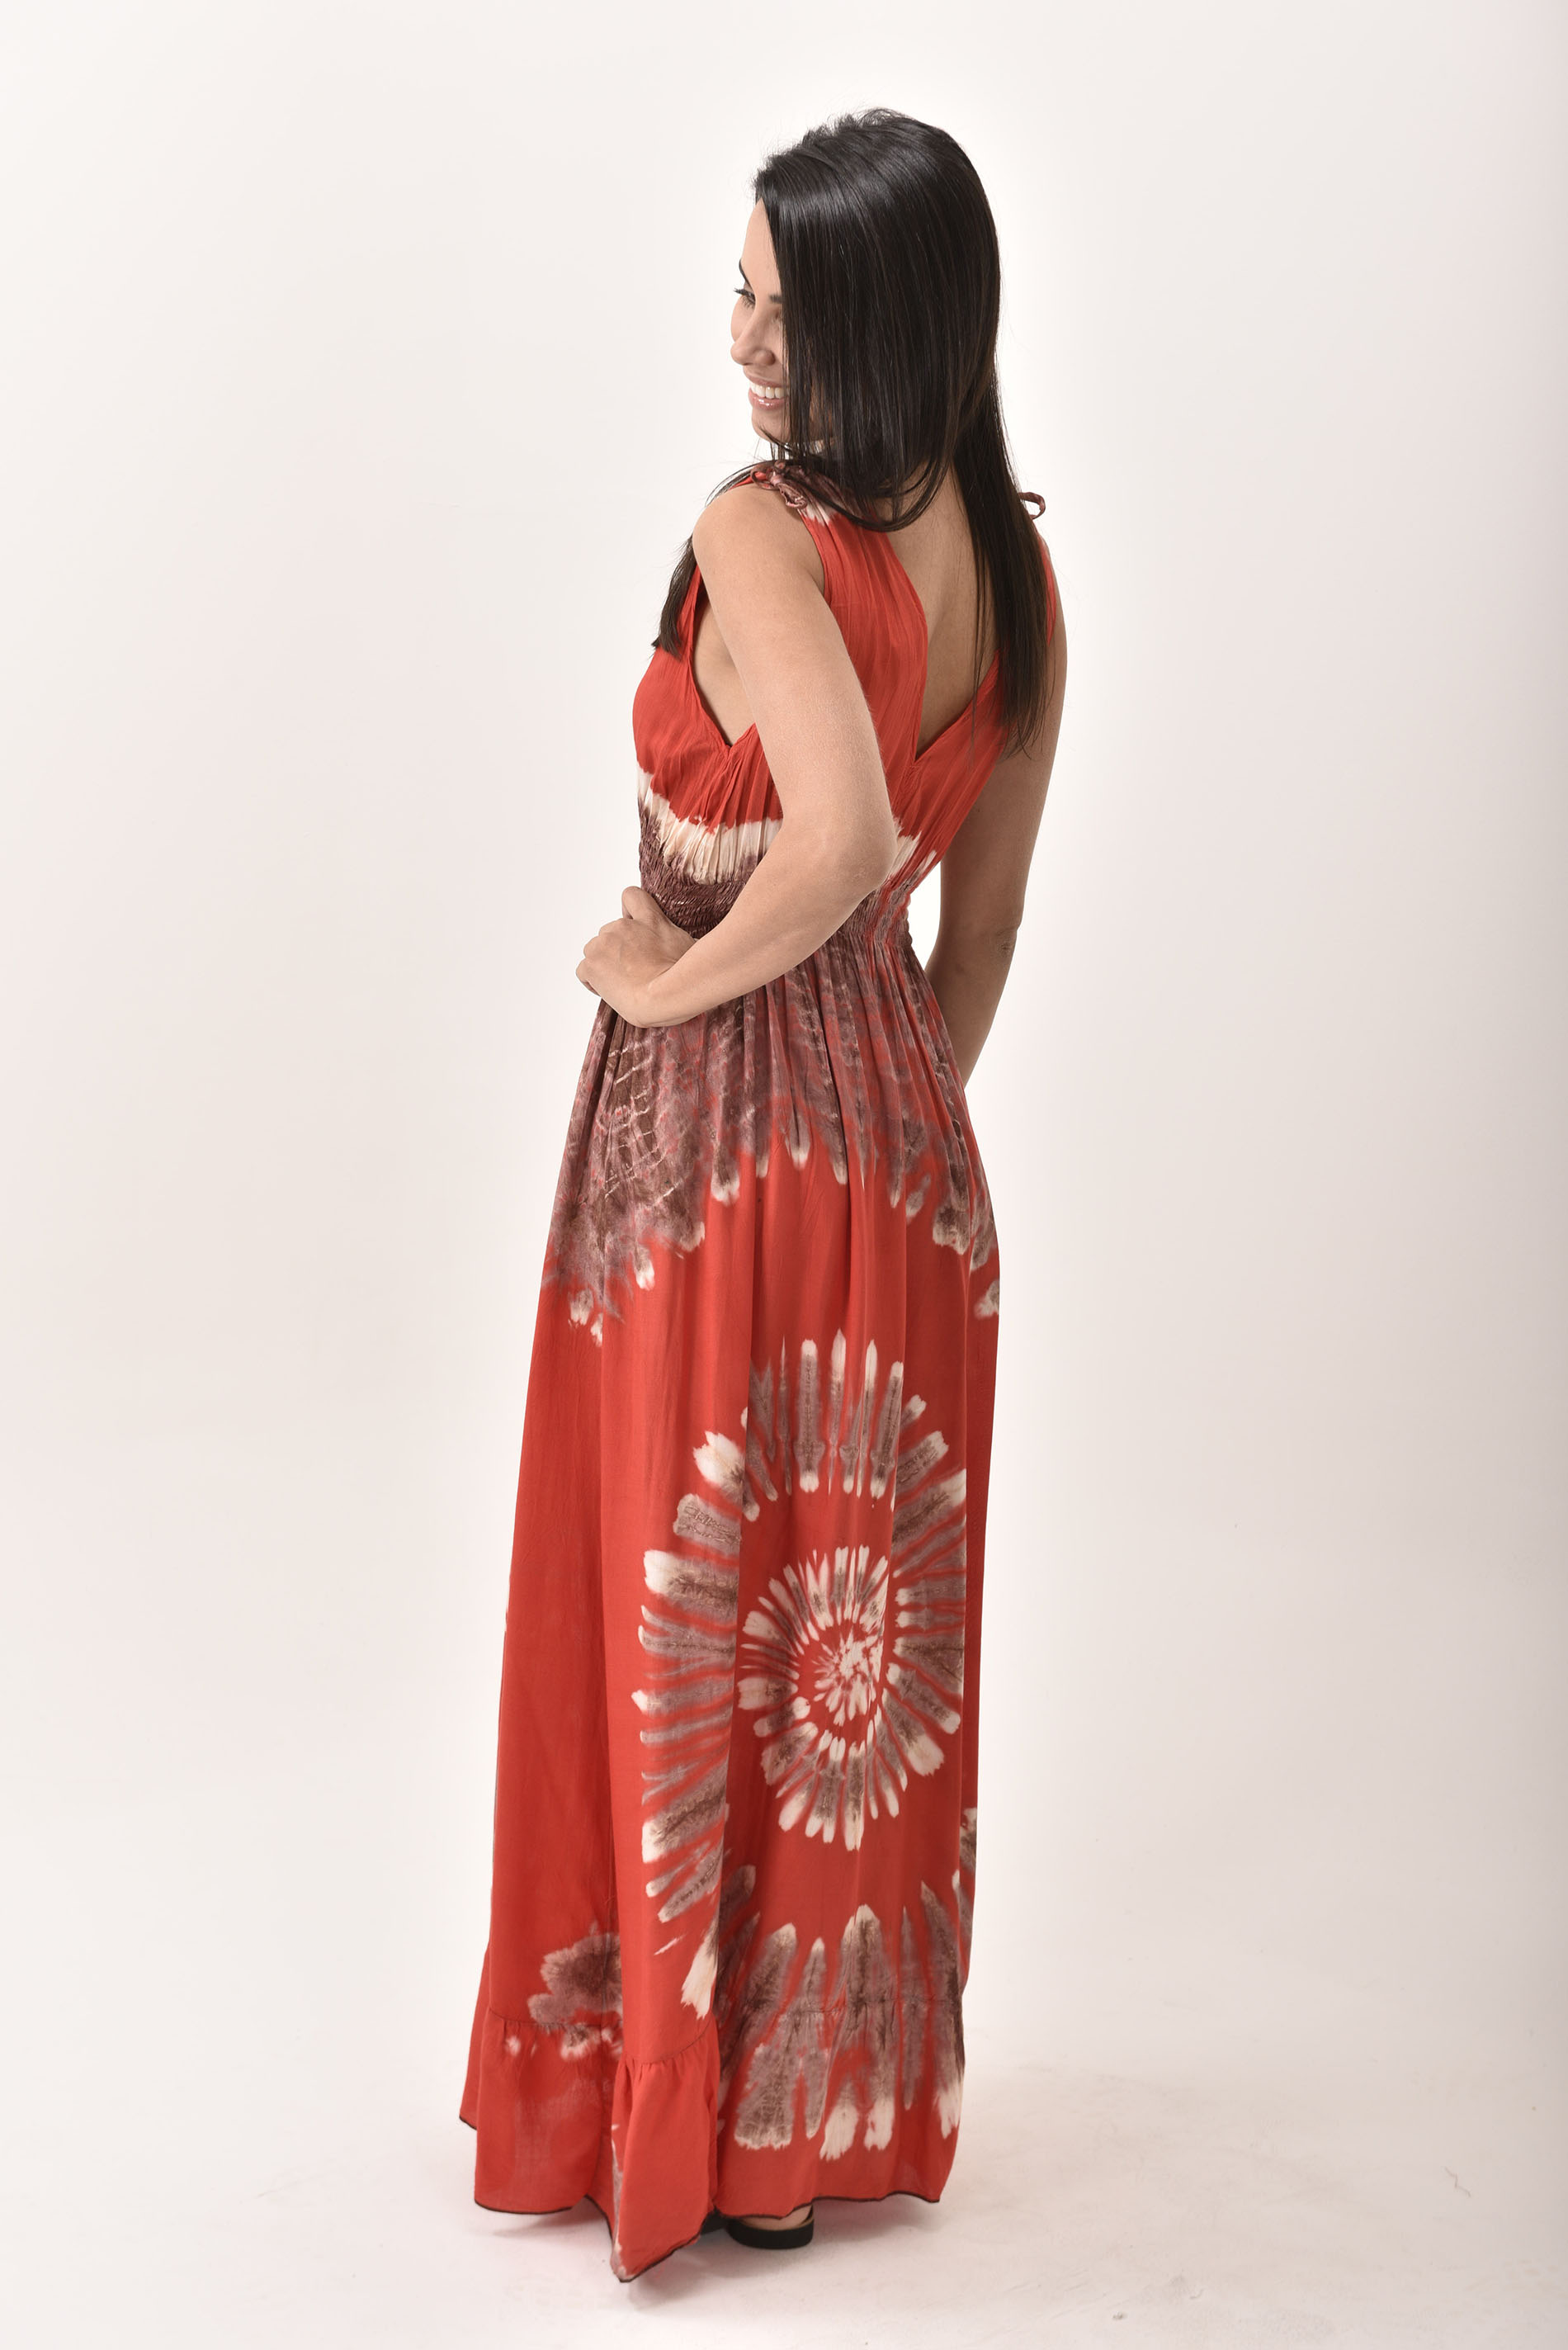 V-Neck Maxi Dress Hand Painted Tie Dye, Red